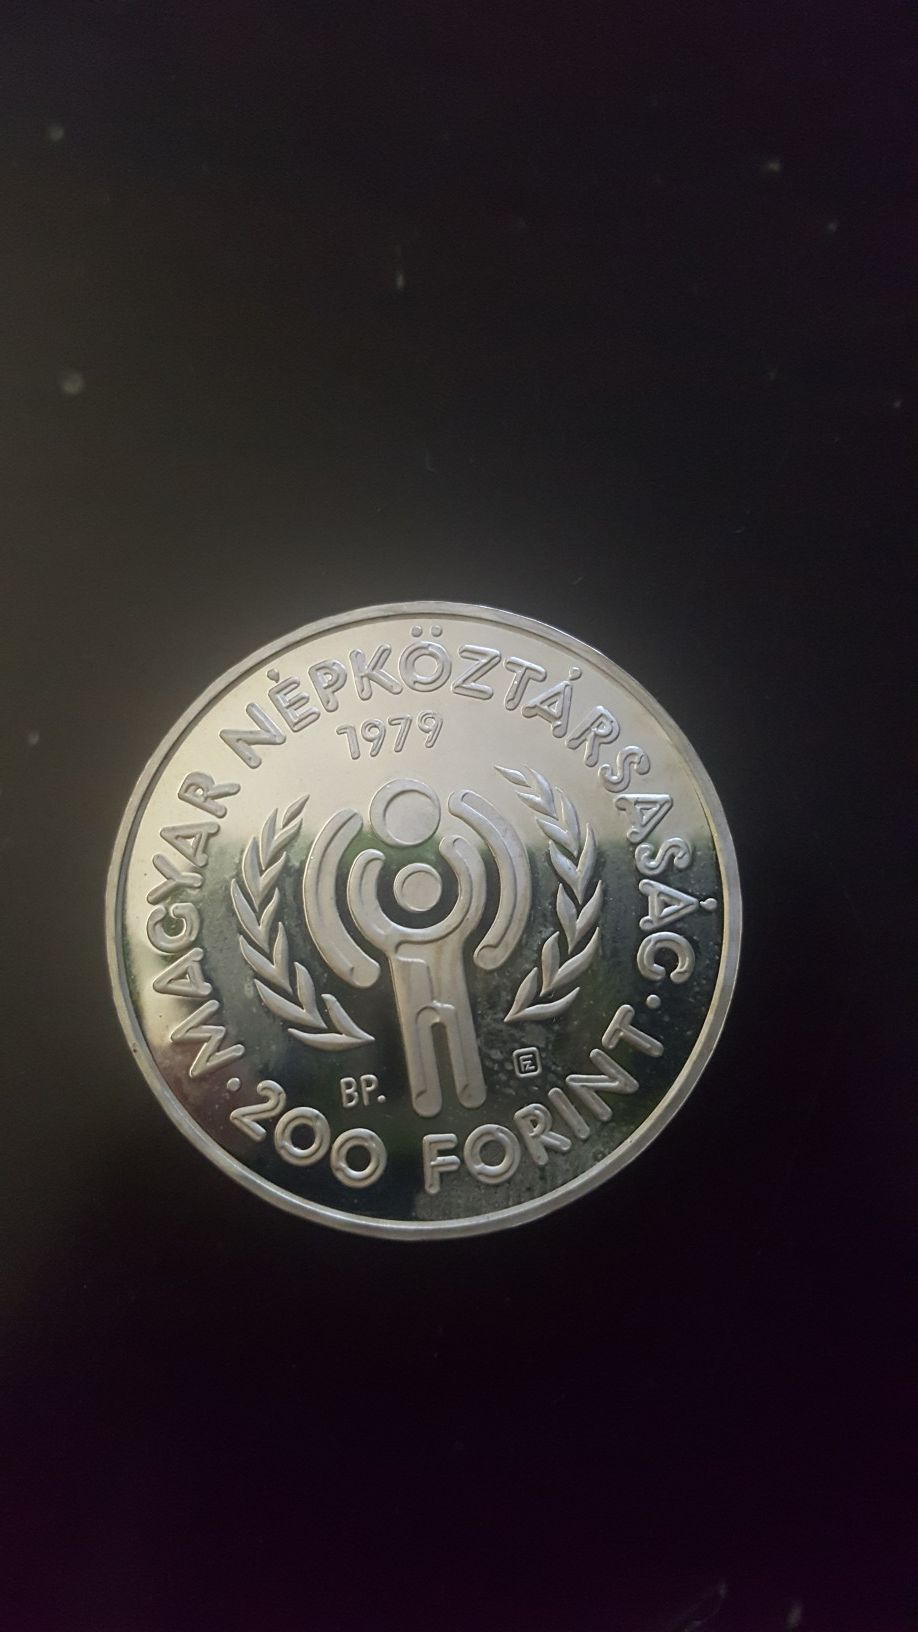 Hungary 200 Forint Silver Coin 1979 Year of the Child